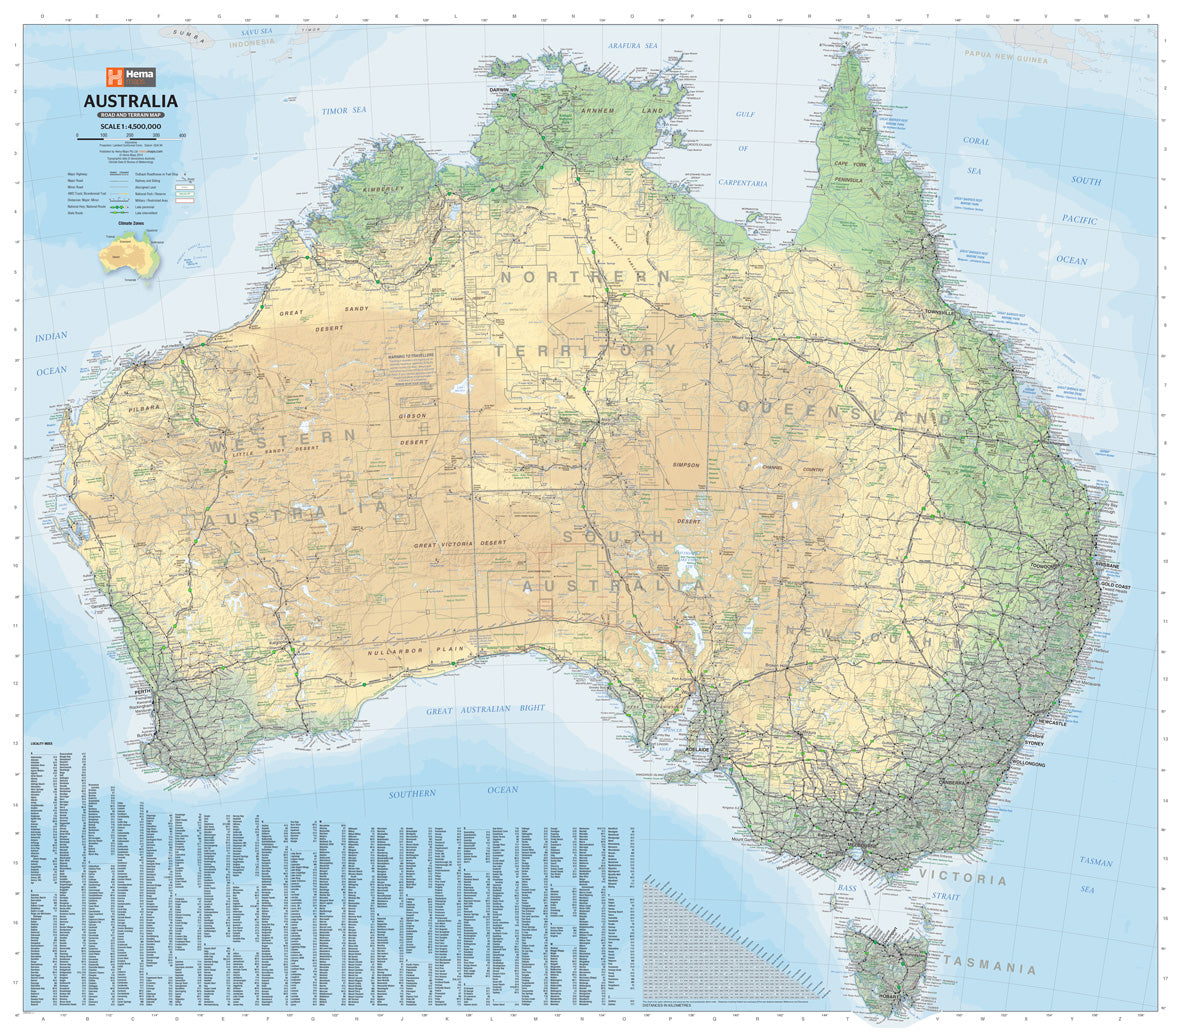 Buy Map Of Australia.Australia Road Terrain Map Laminated Tubed 1000x875mm Hema Maps